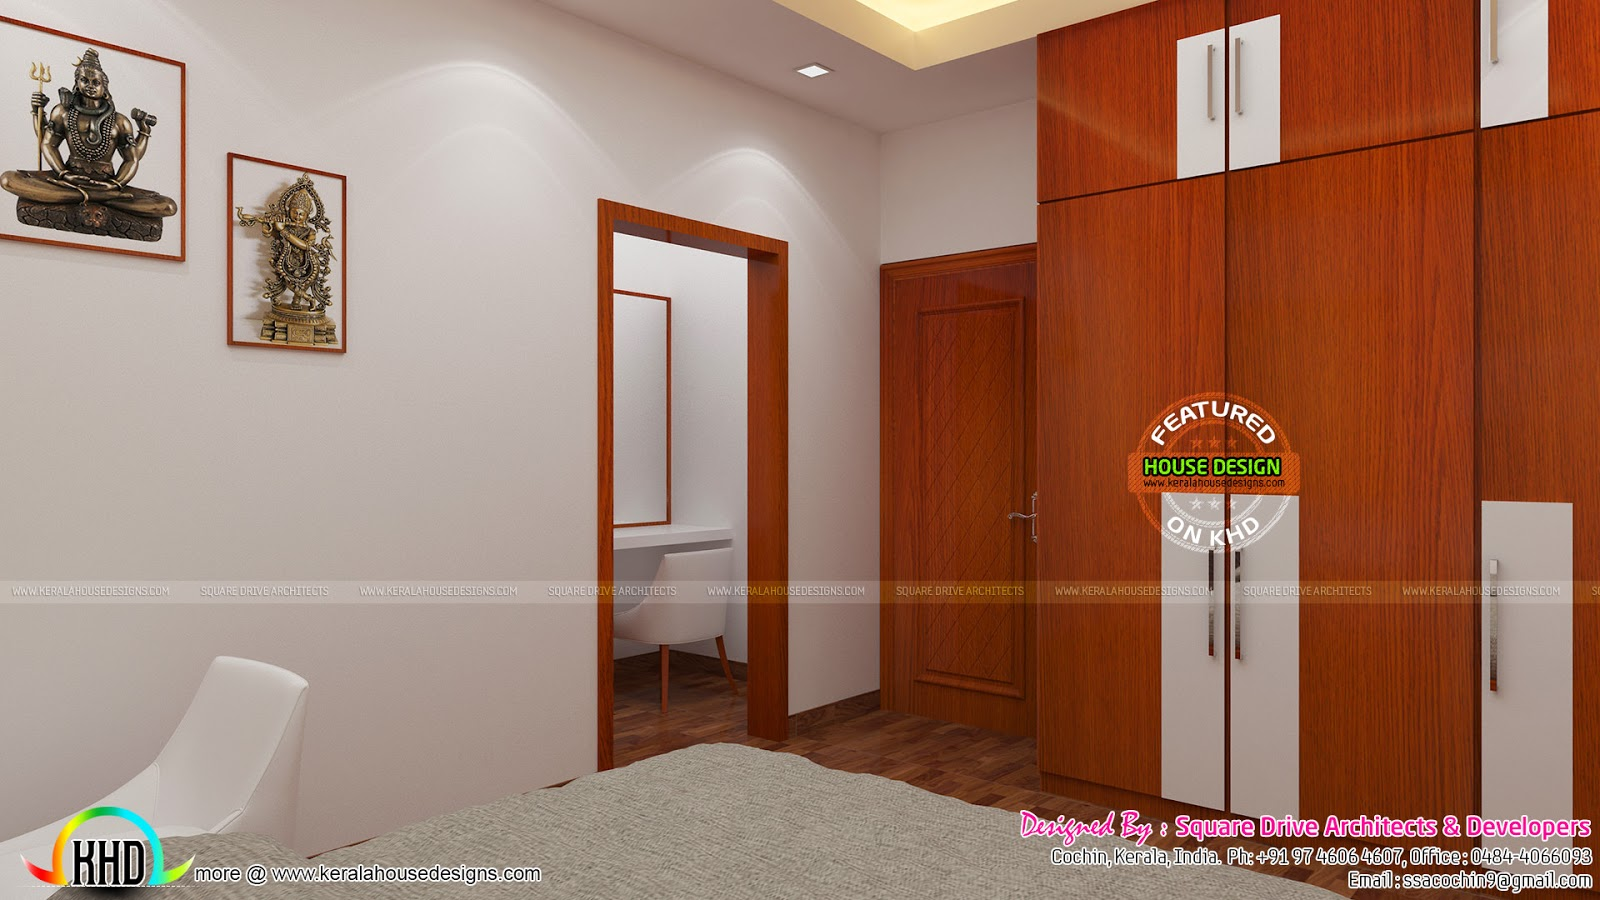 Water fountain interior parents bedroom and was area kerala home design and floor plans for Water softener for 4 bedroom house